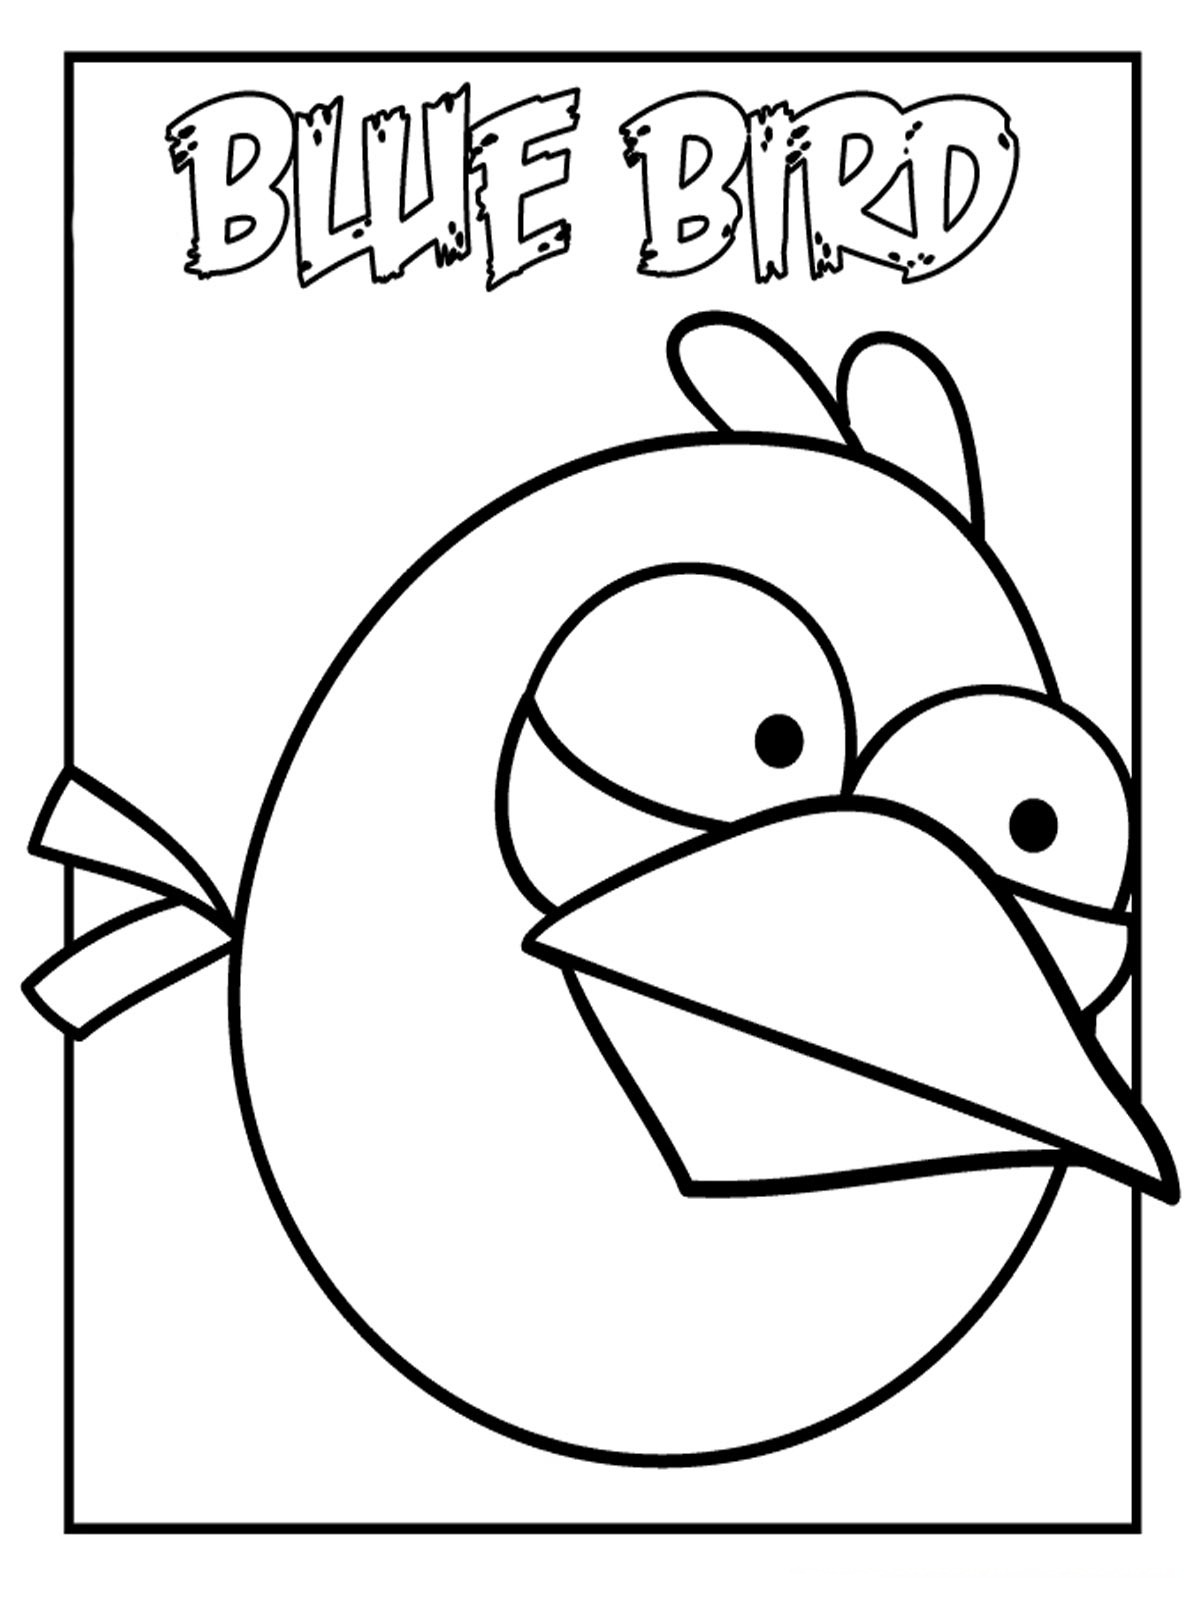 Angry Birds Coloring Pages For Kids Realistic Coloring Pages Angry Birds Coloring Pages For